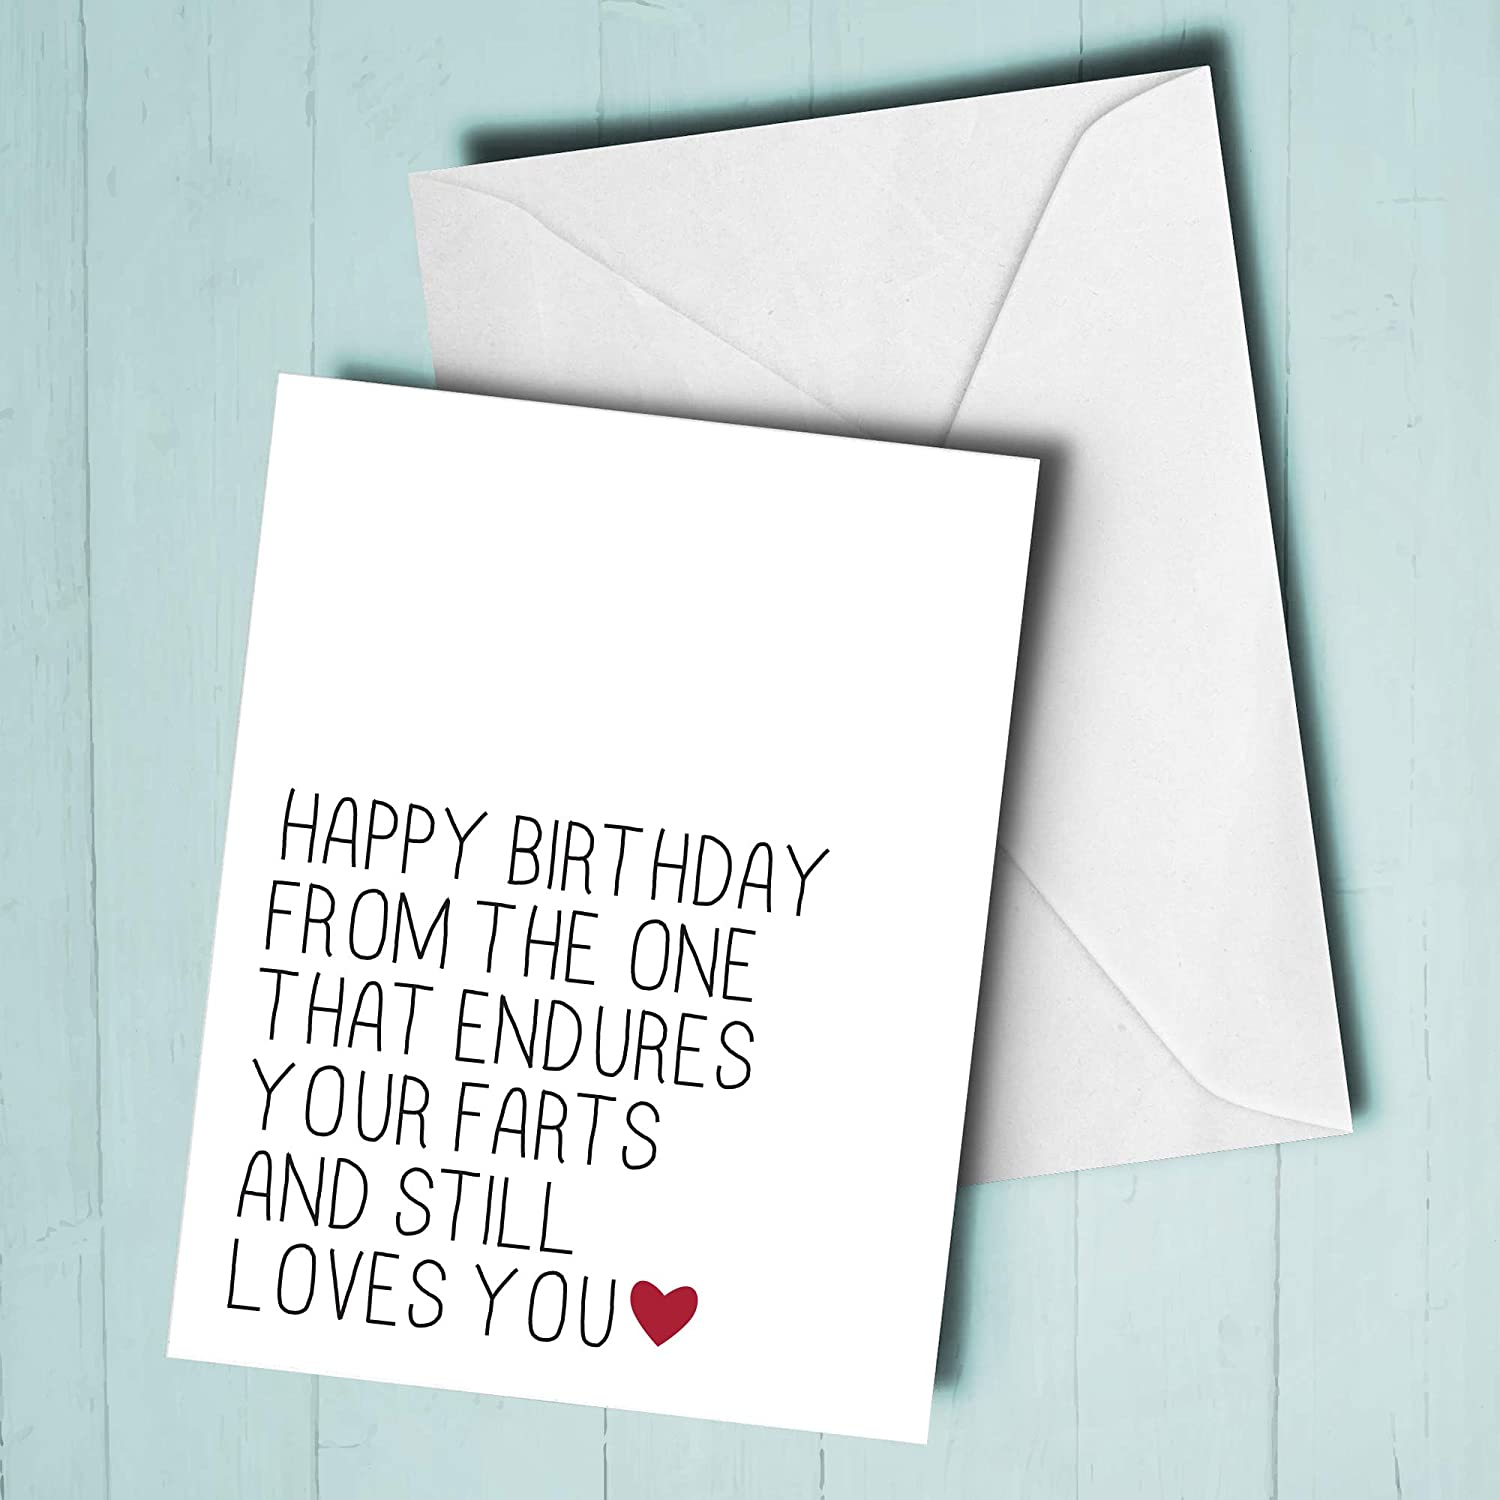 Funny Husband Card Birthday Card for Husband Love You More Than Your Farts Funny Birthday Card for Husband